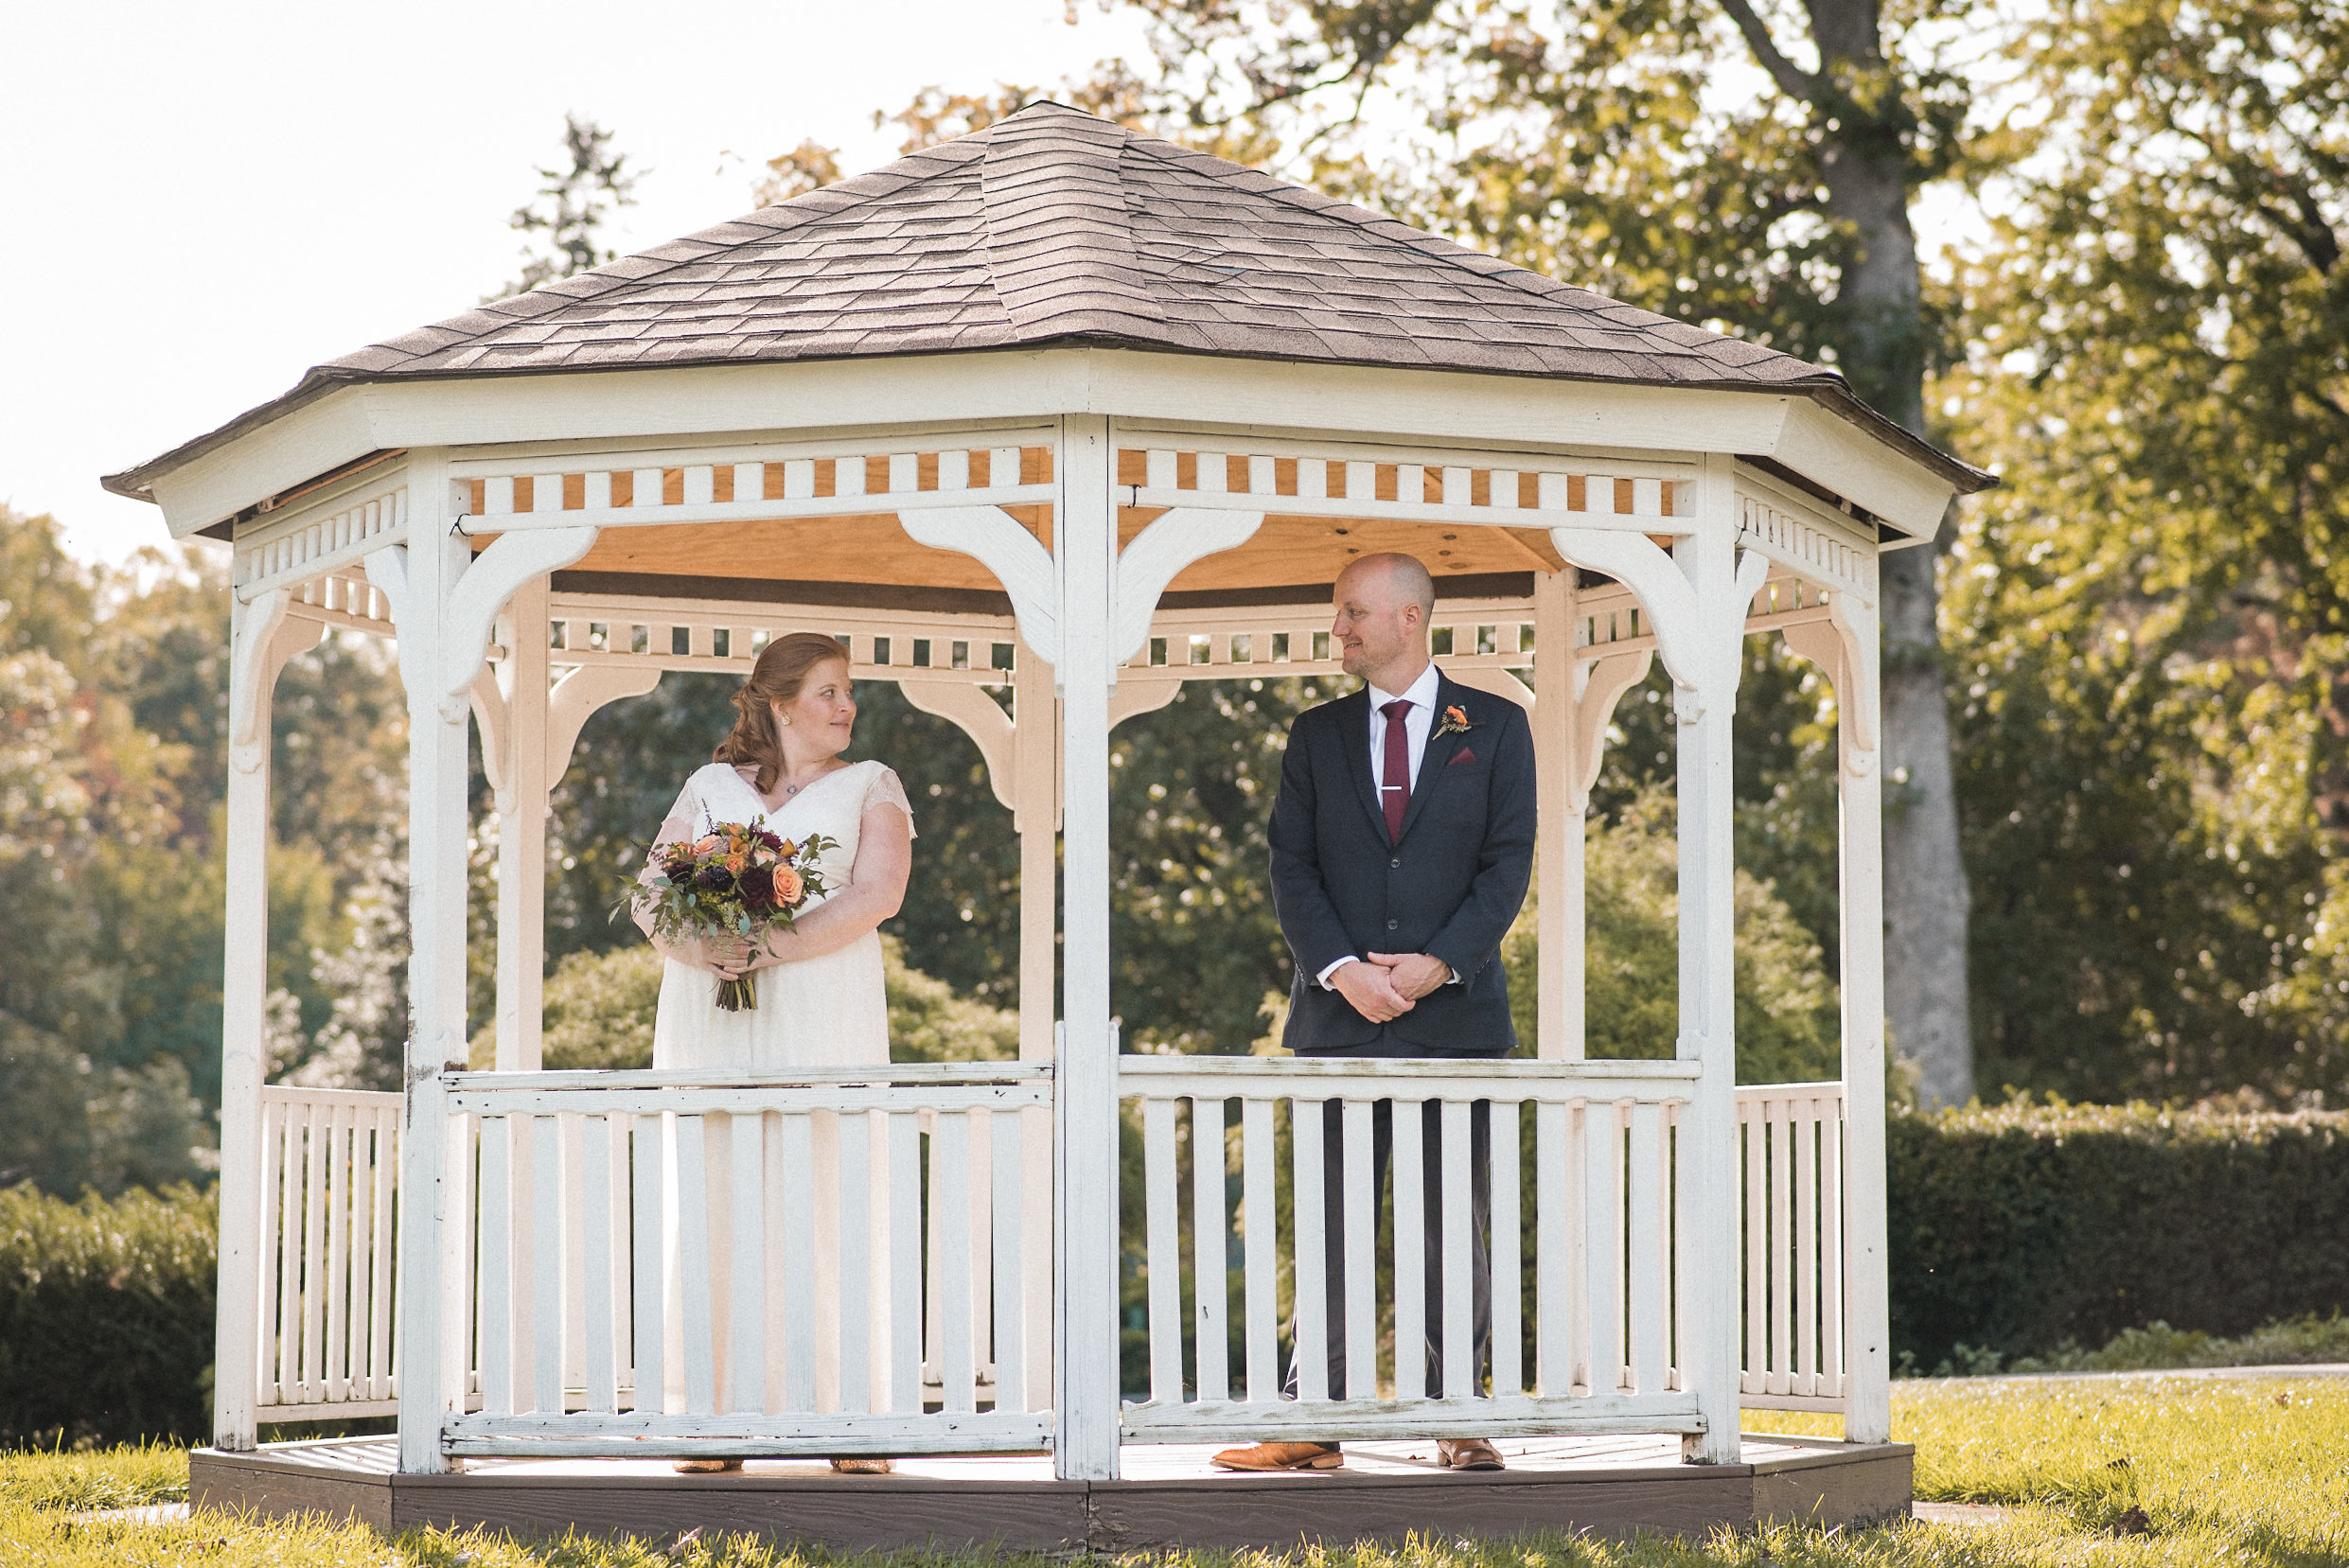 Bride and groom standing in gazebo